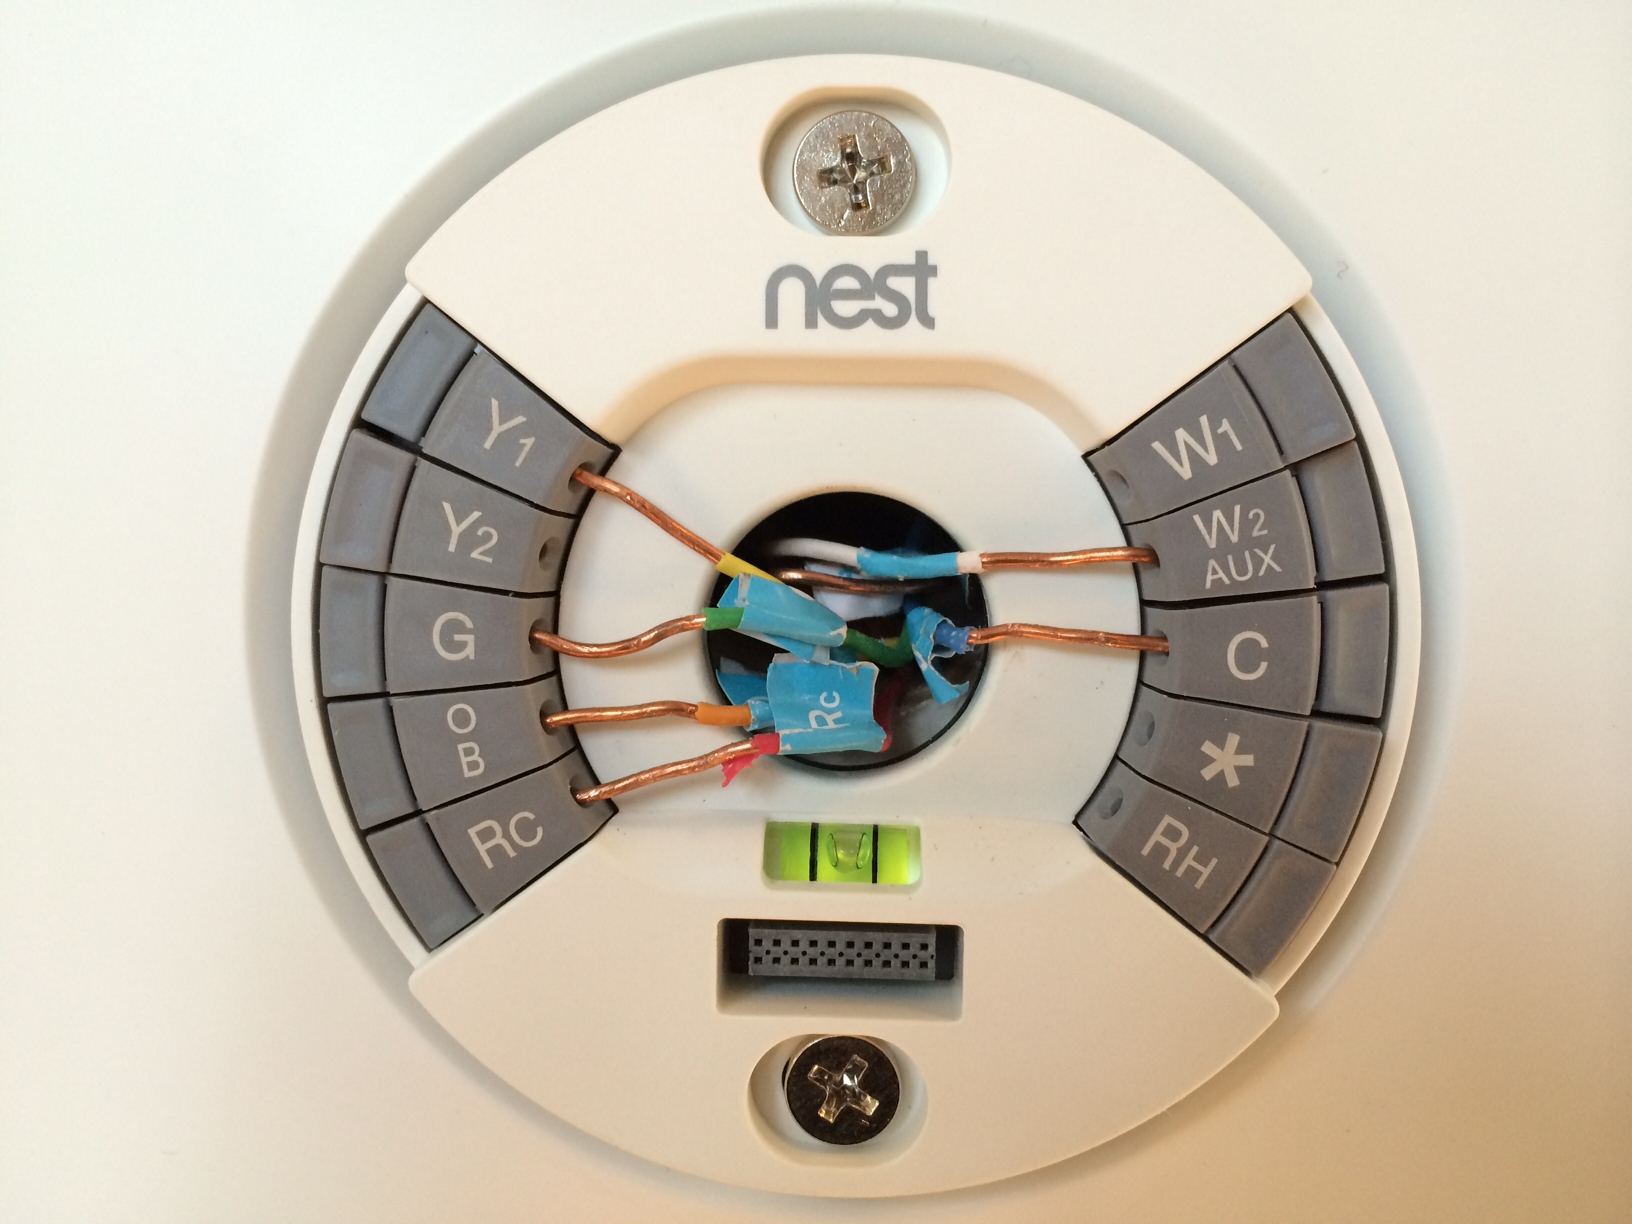 Hydronic Heating  Nest Thermostat Hydronic Heating